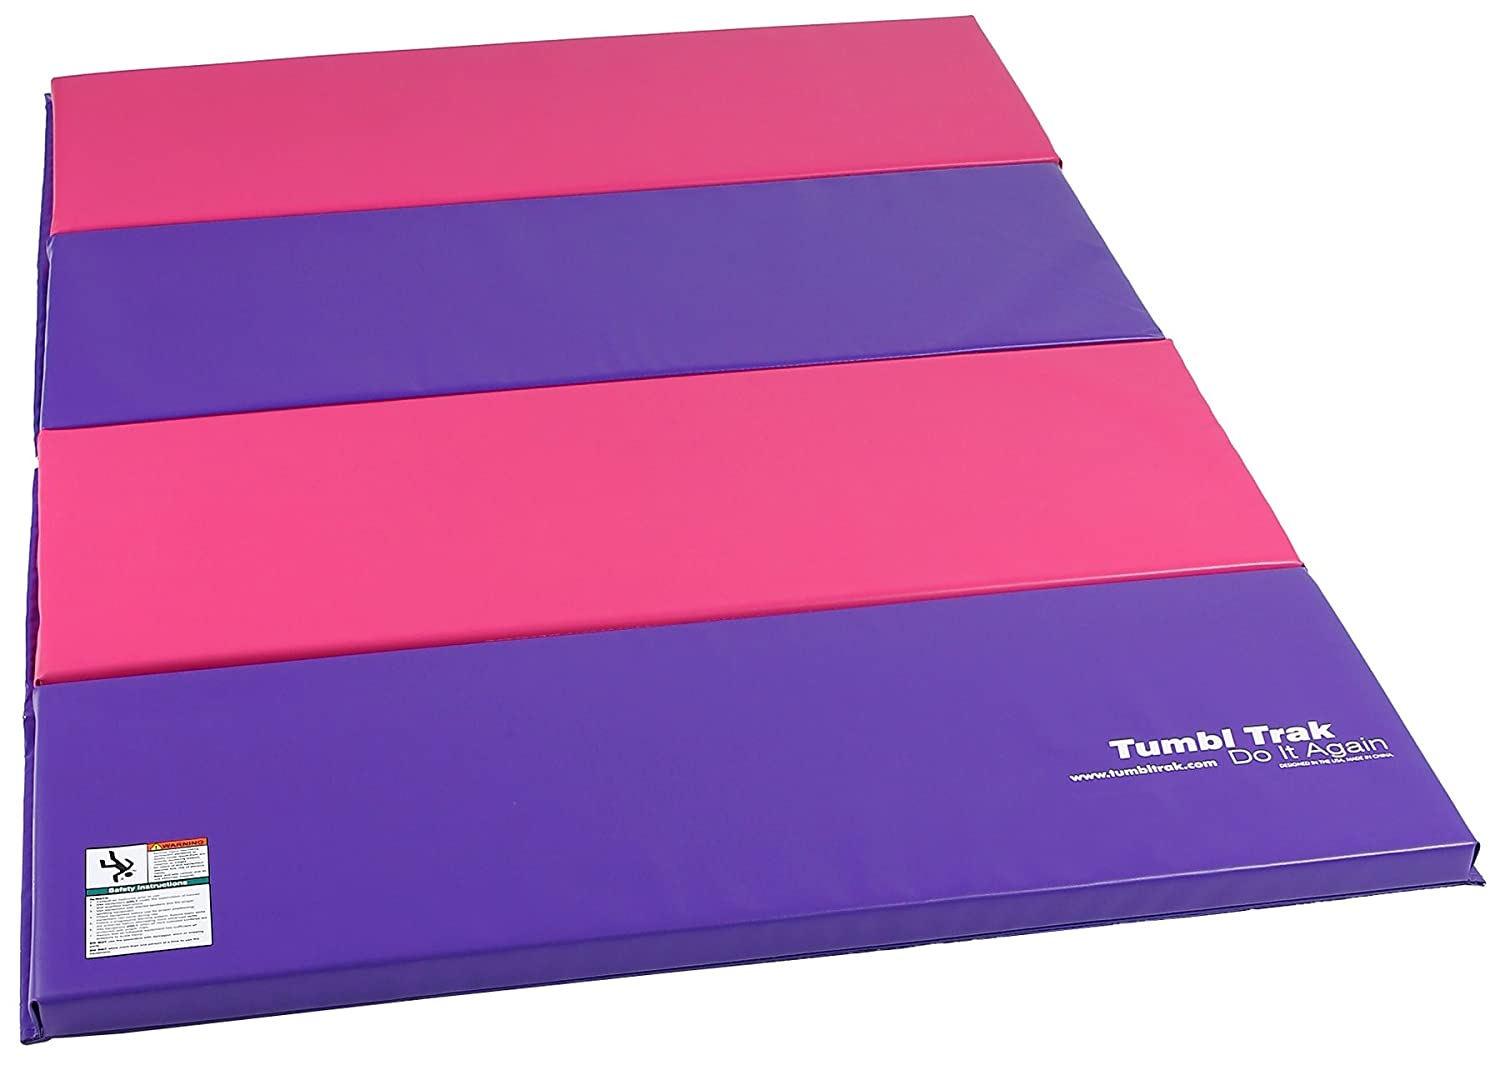 itm workout accessories gym mat pilates mats home yoga exercise gymnastic for fitness